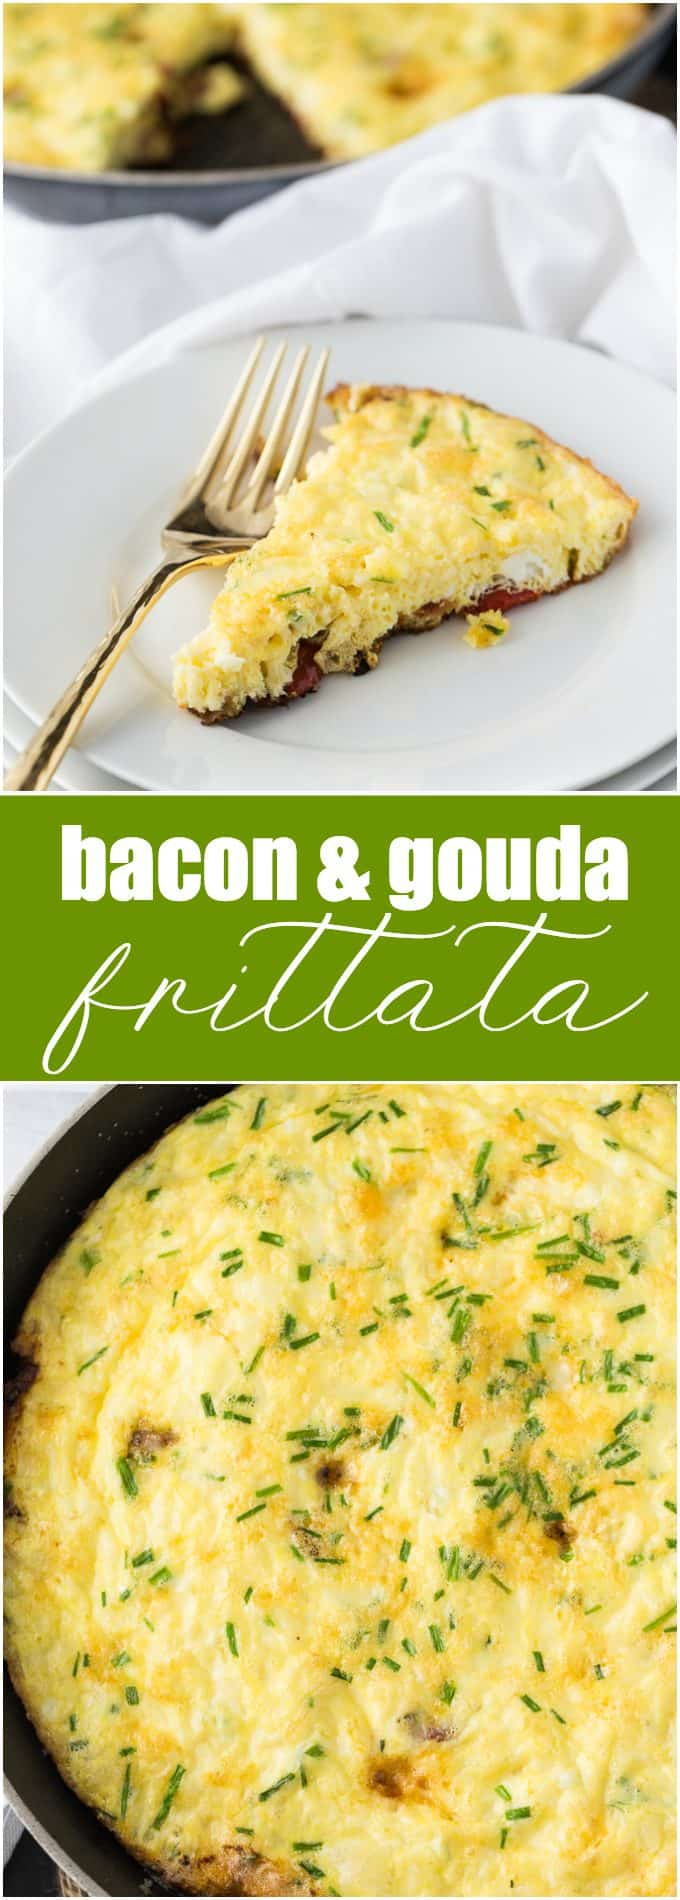 Bacon & Gouda Frittata - Perfect for a low carb brunch!